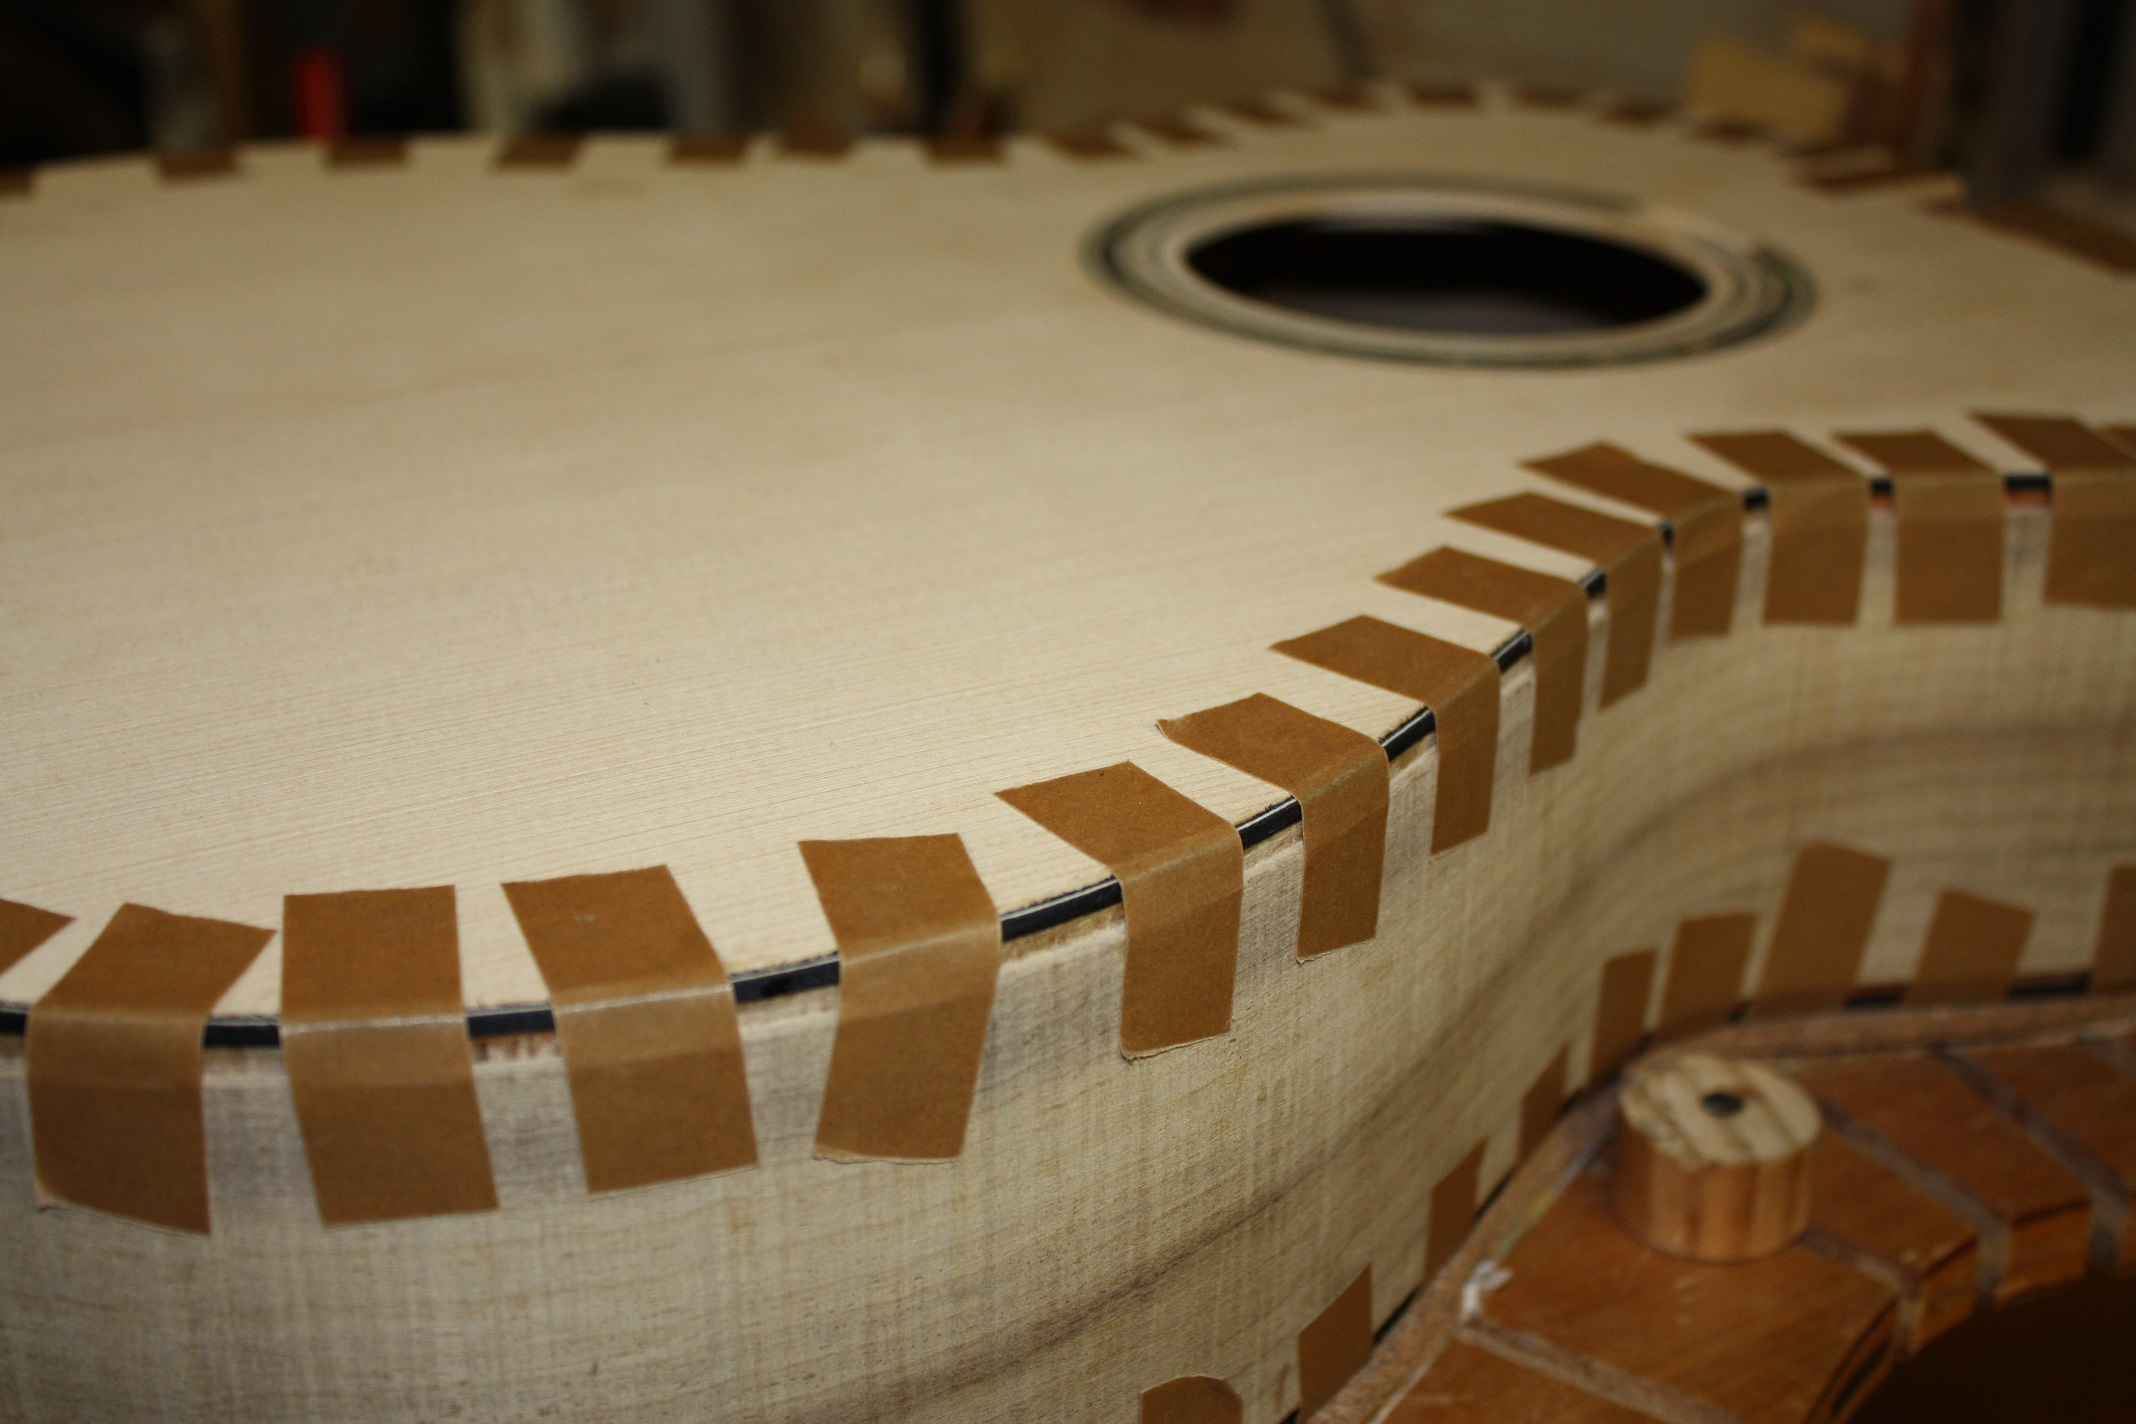 Binding tape holding the purfling in place.